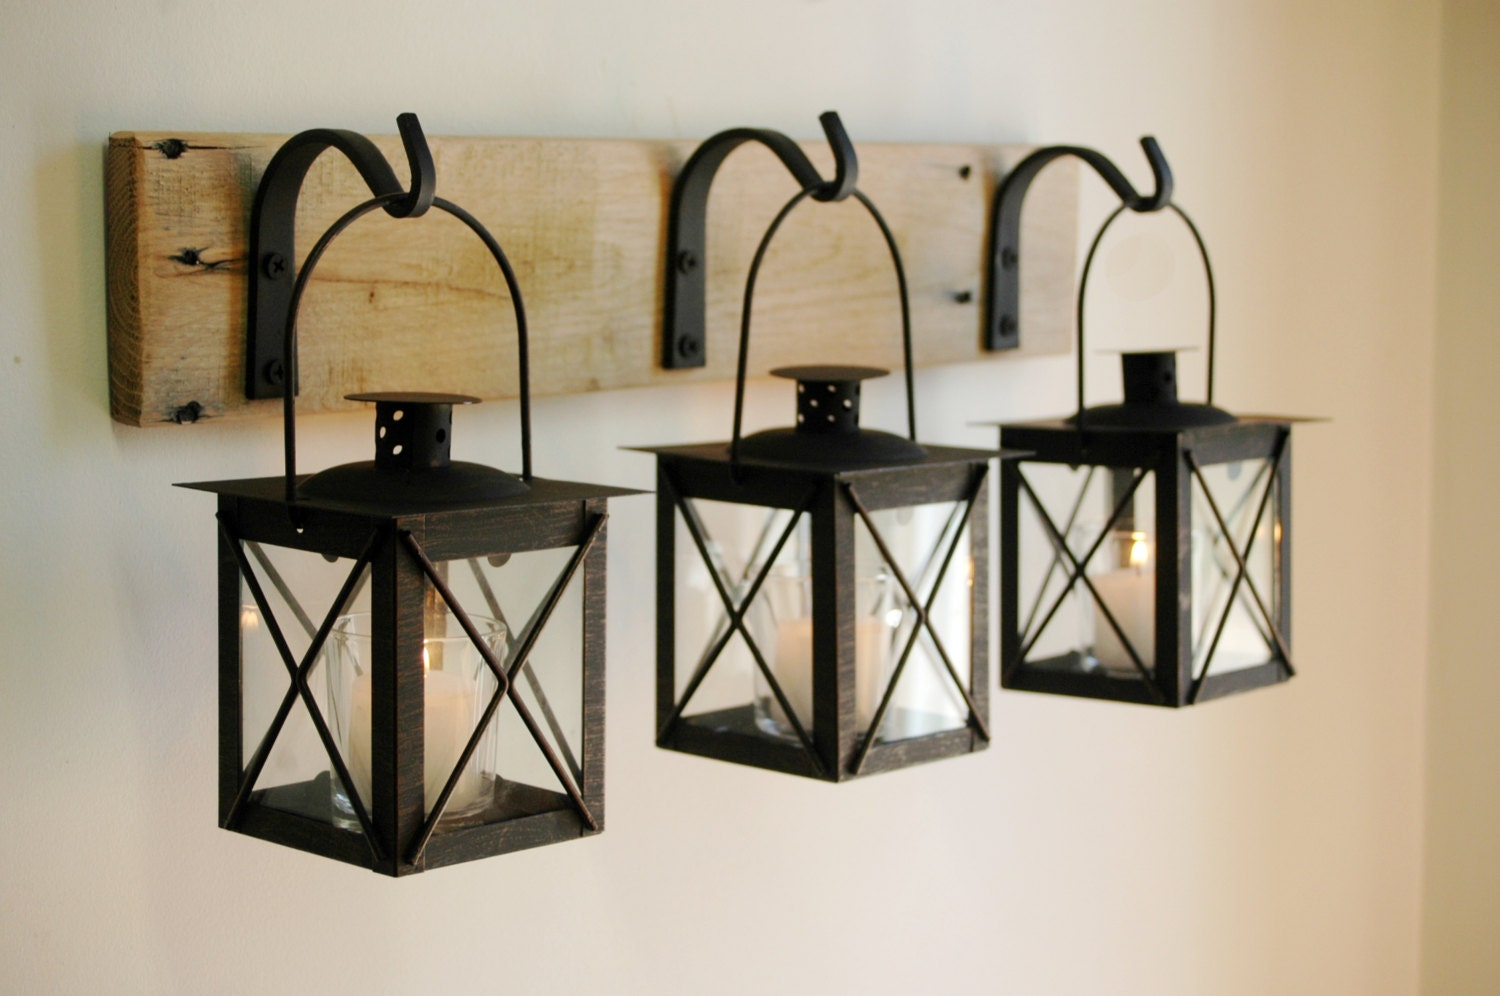 Black Wrought Iron Wall Decor Black Lantern Trio Wall Decor Home Decor Rustic Decor